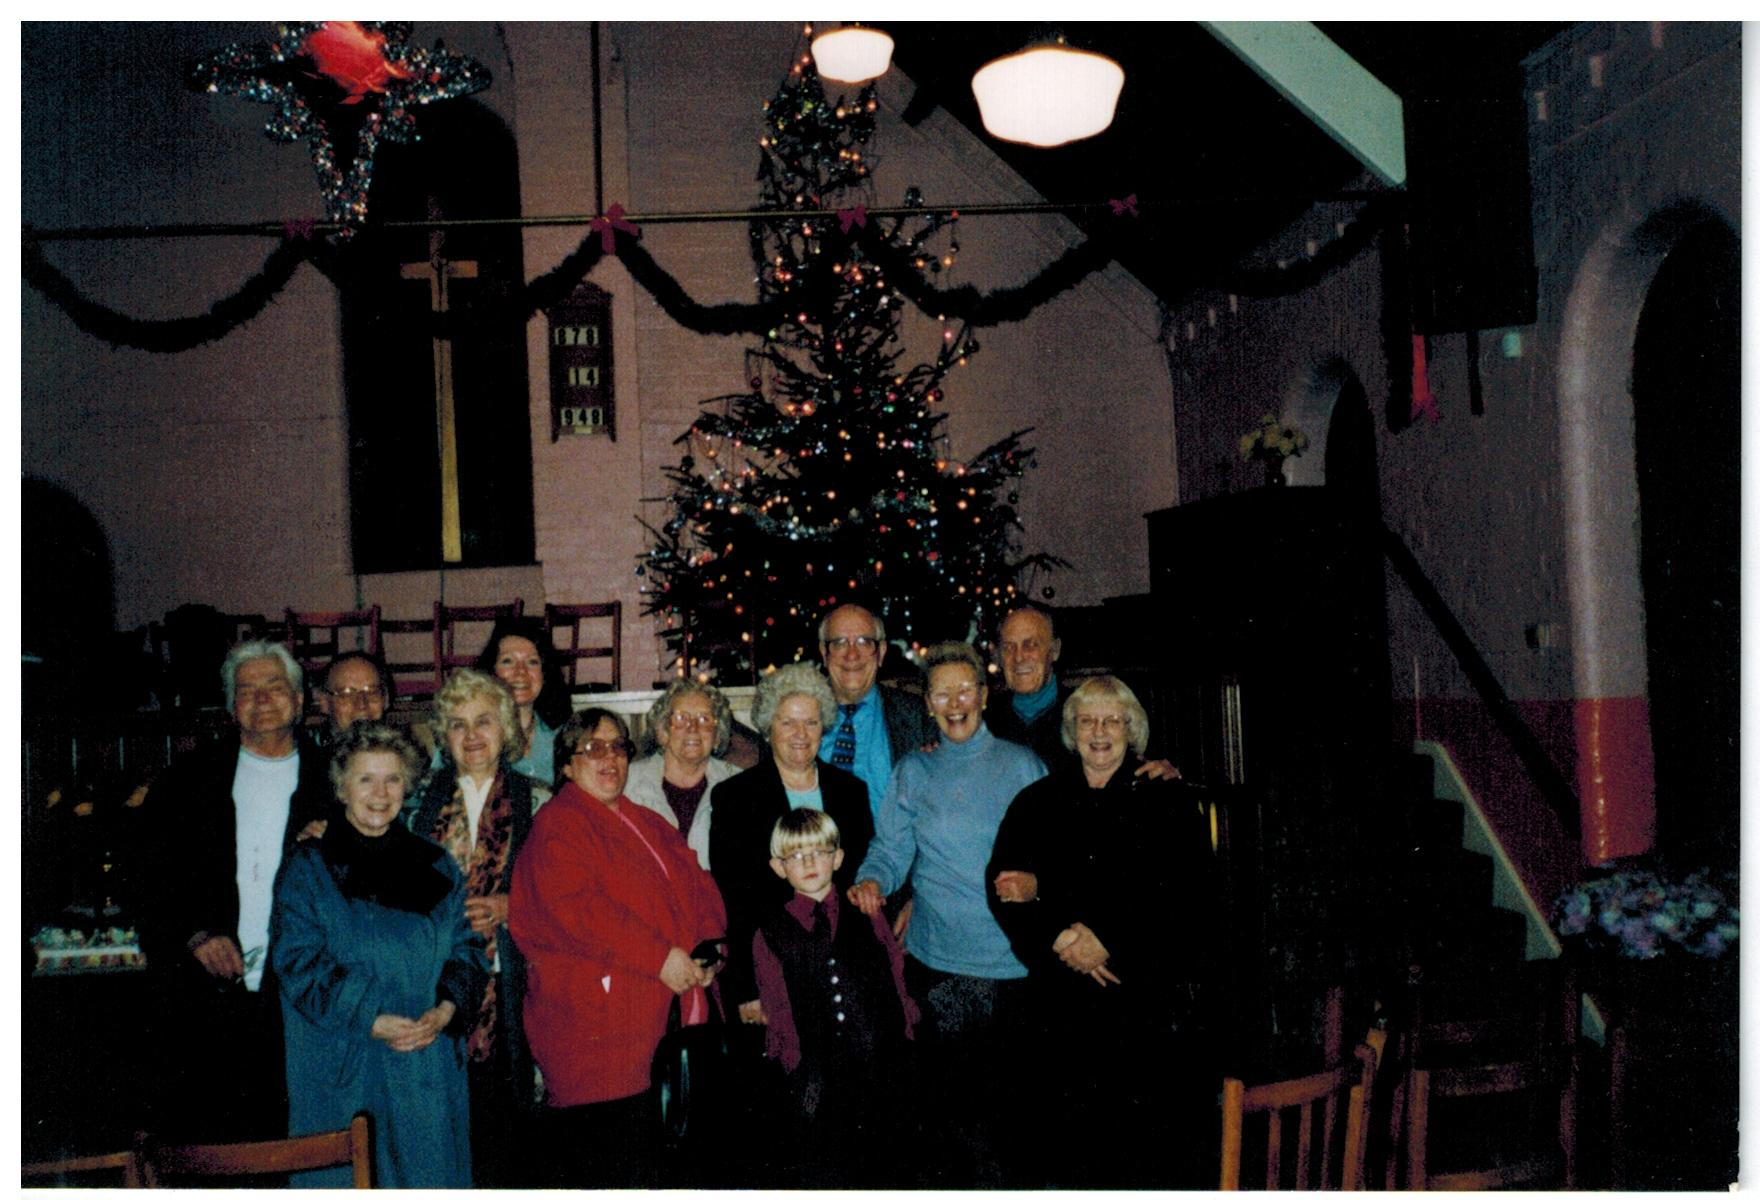 H074_New-Yrs-Eve_1999